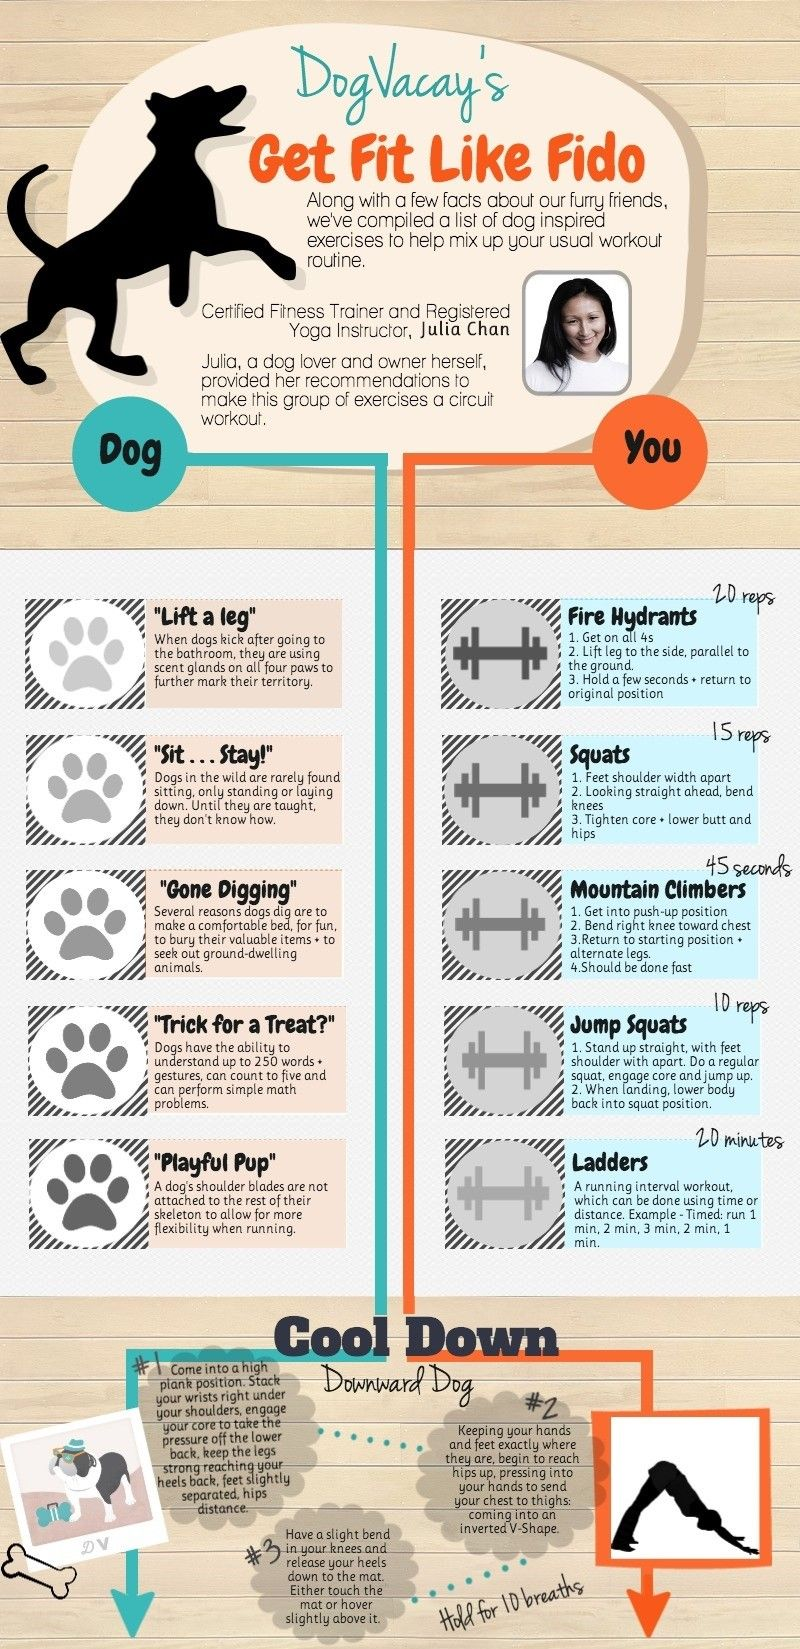 Training dog and yourself